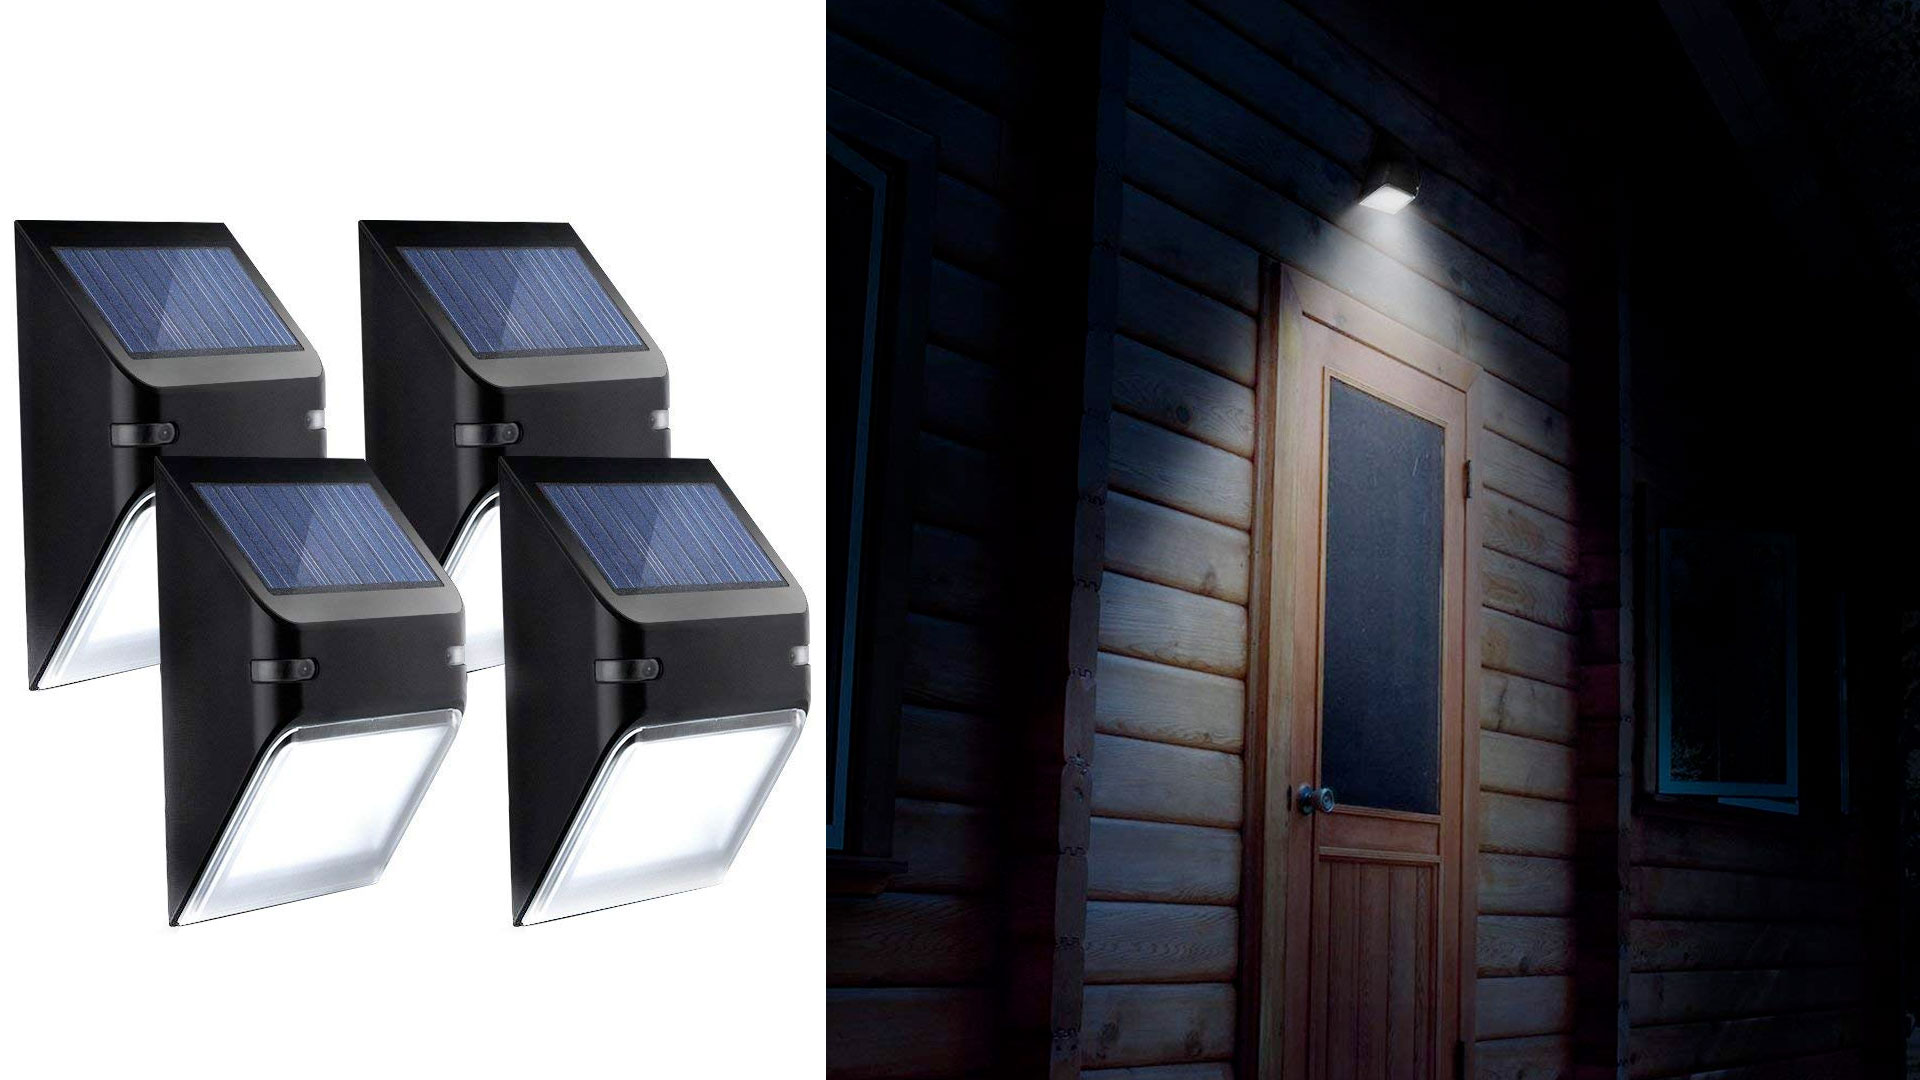 Illuminate your yard without wires by using this 4-pack of solar lights for just $10 shipped